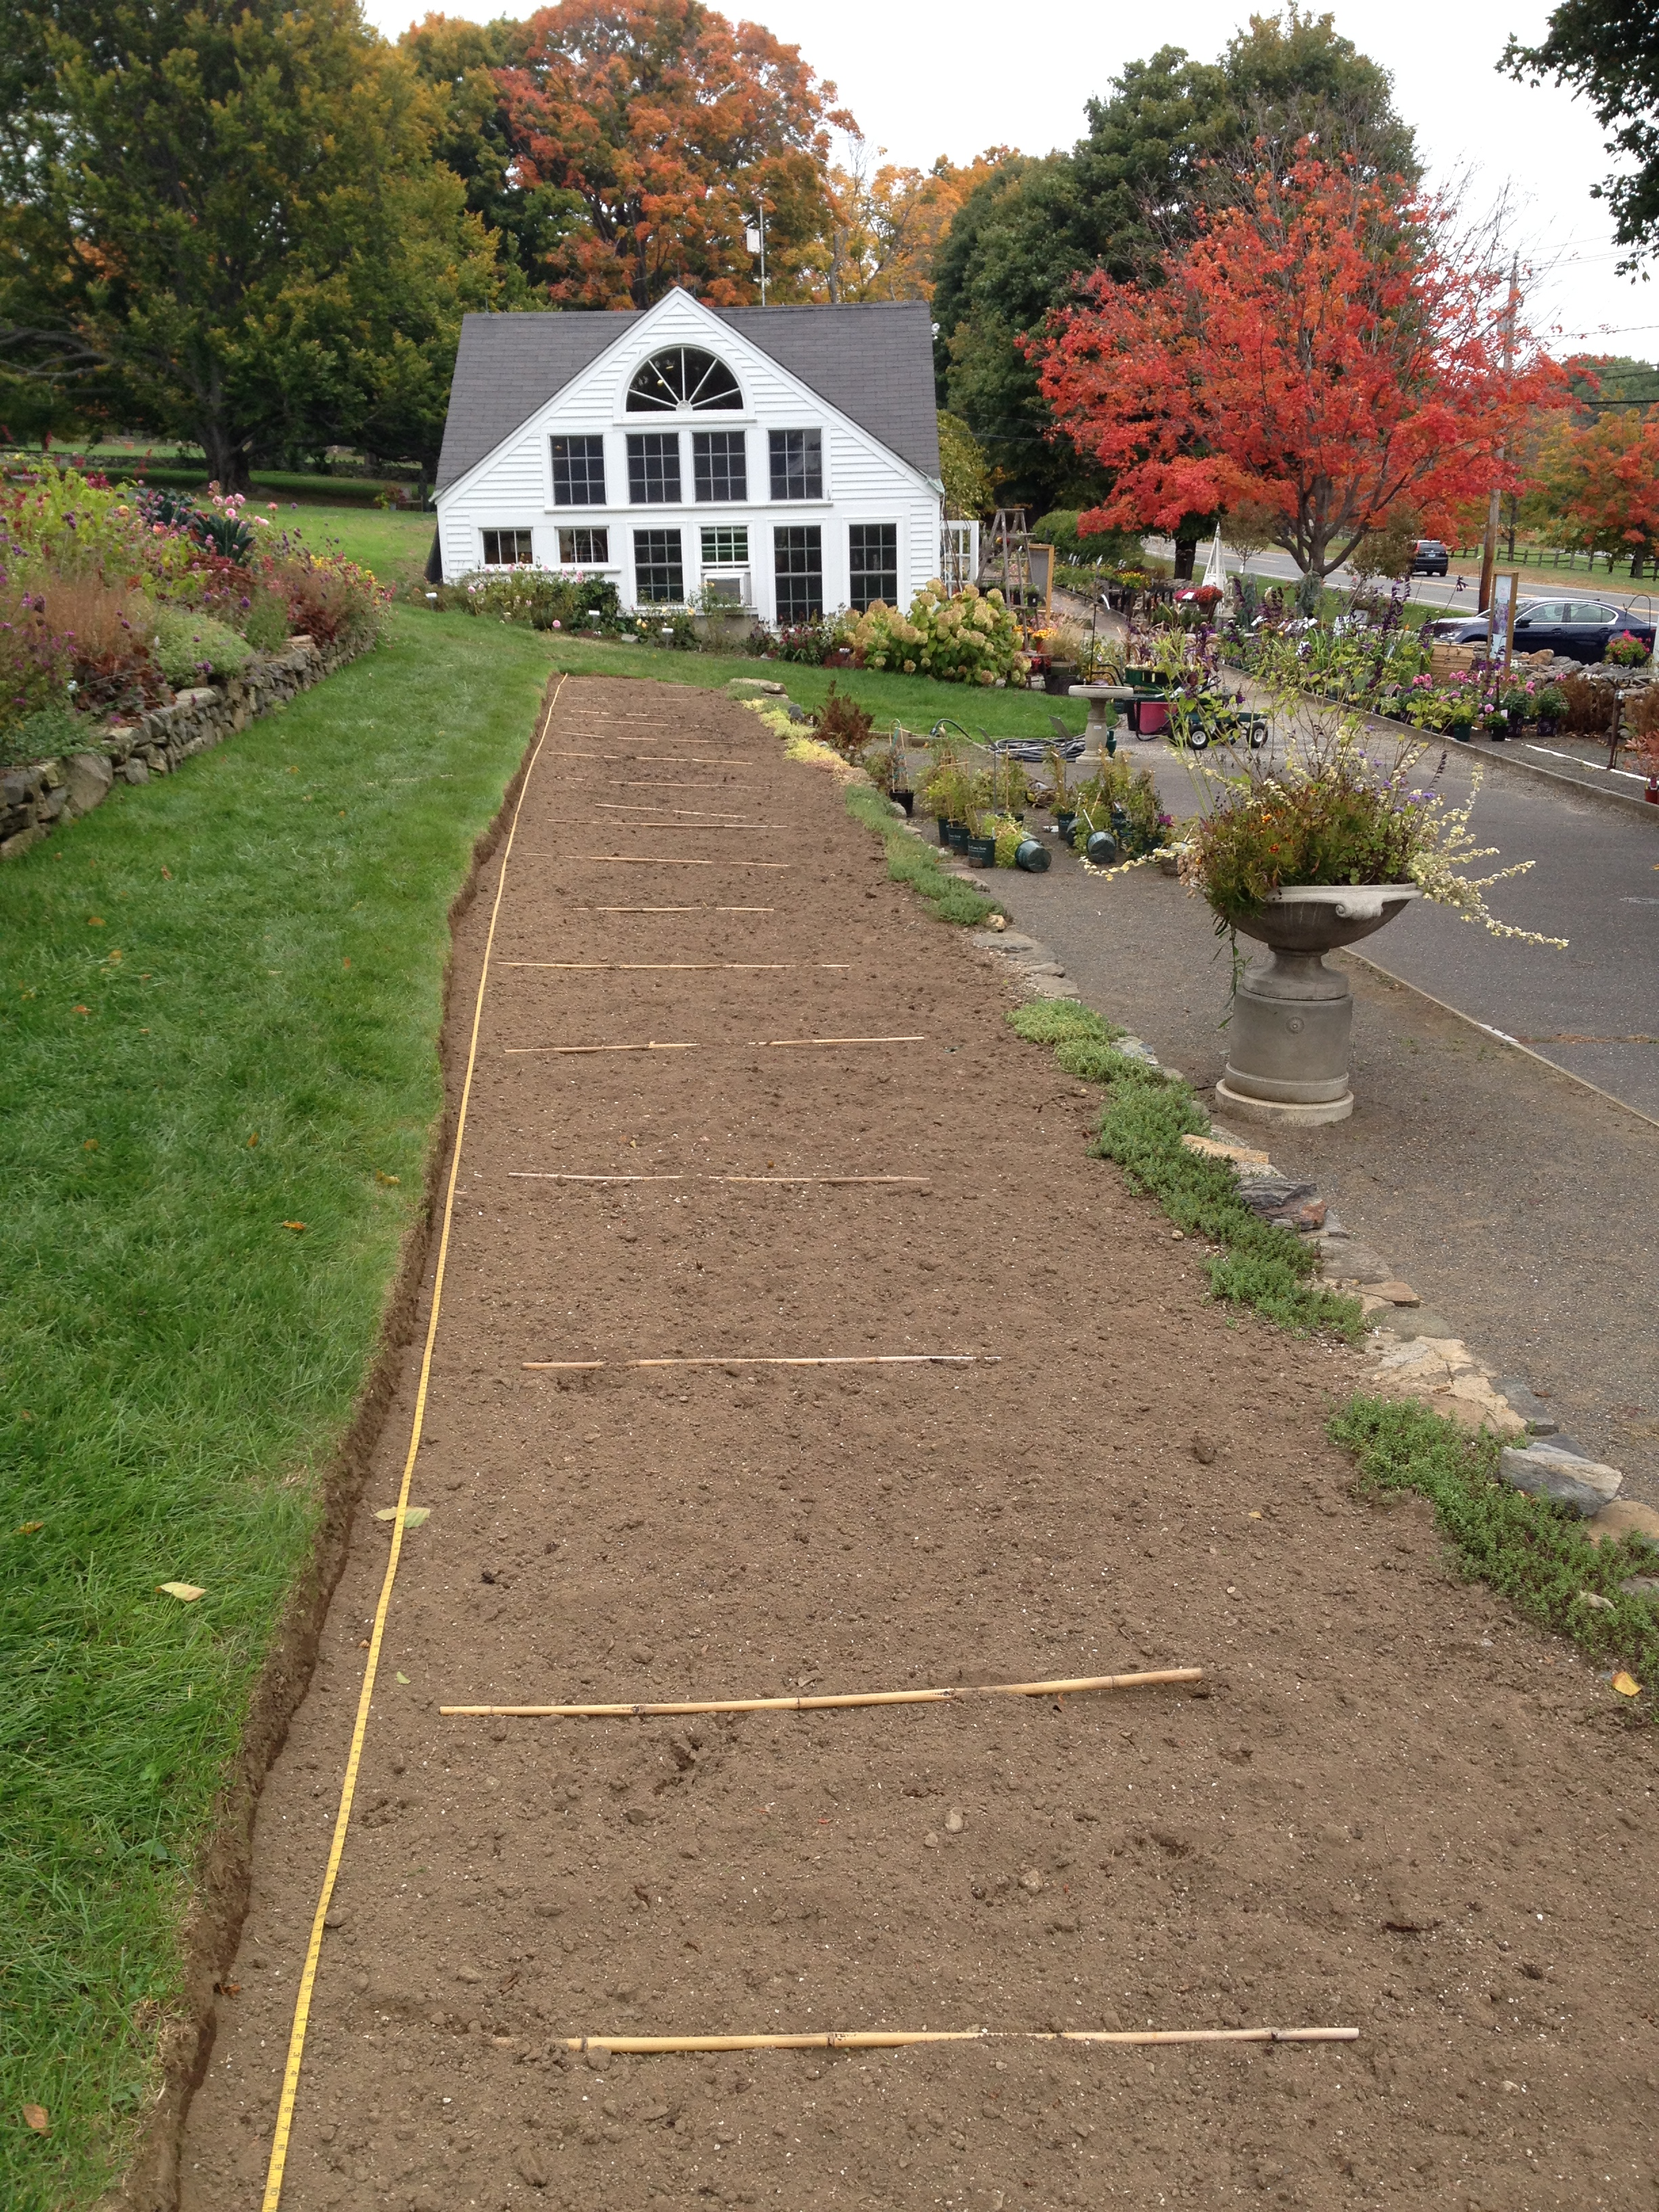 measuring-tape-and-bamboo-poles-are-used-to-lay-out-the-design-for-the-tulip-border